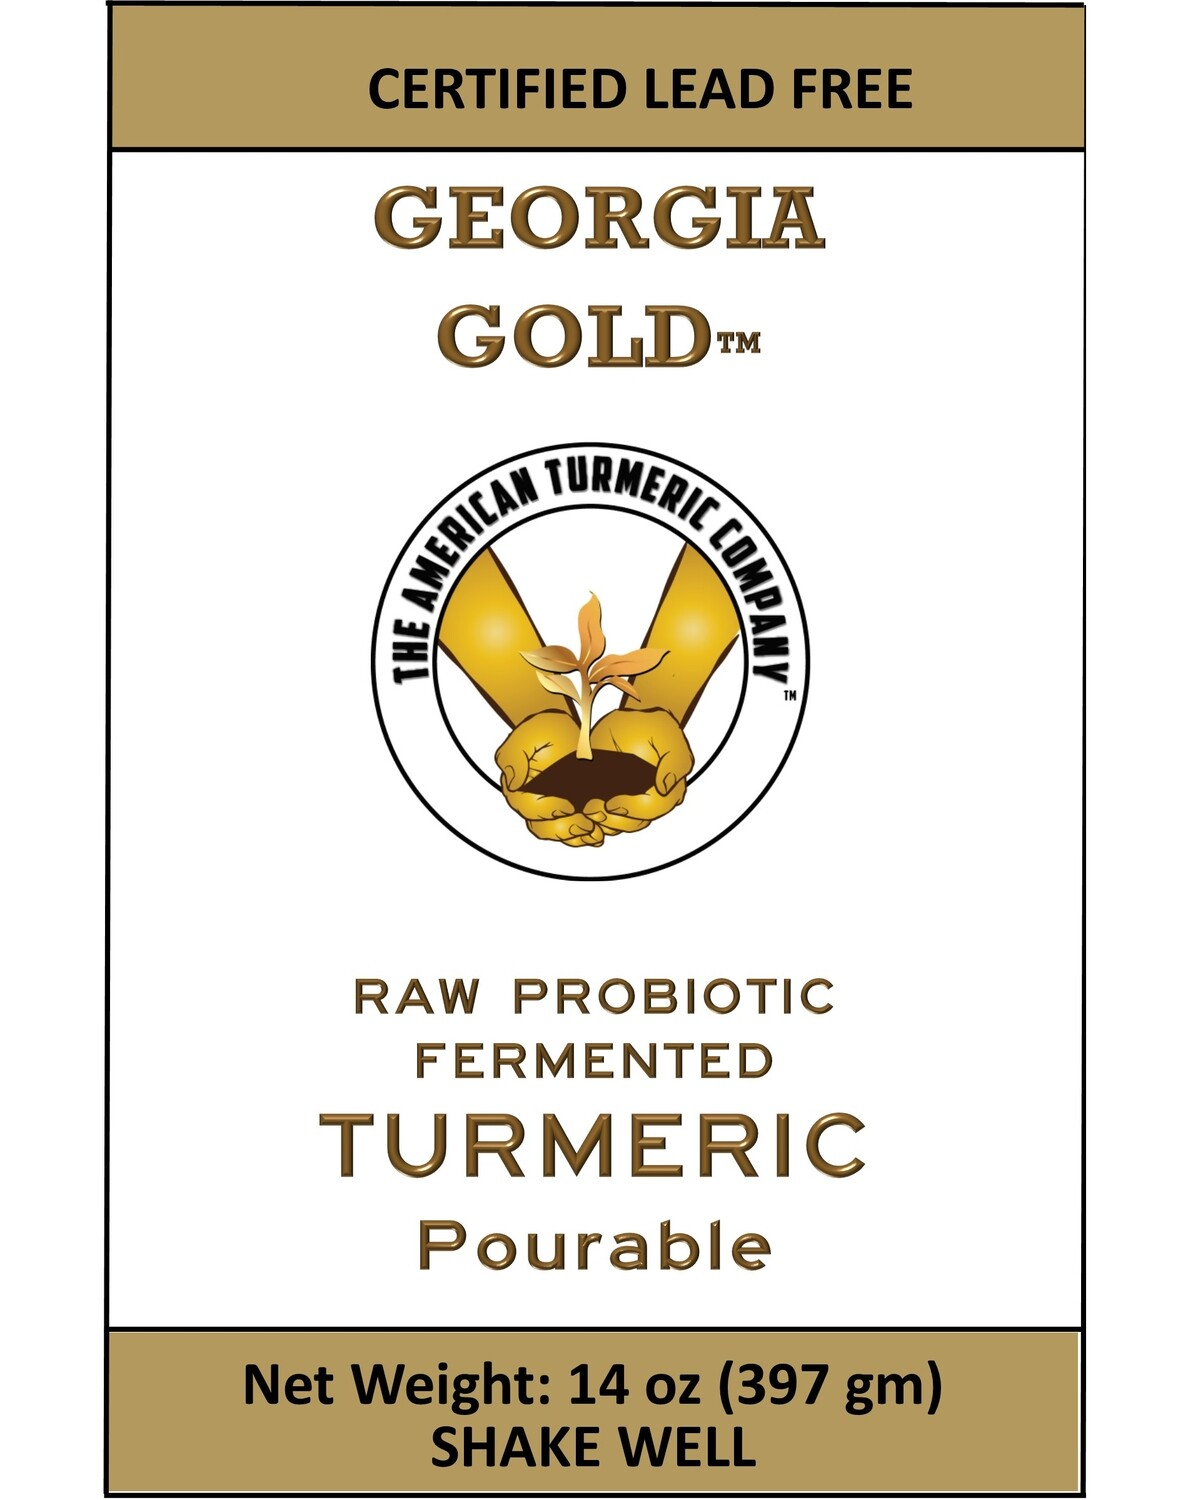 Georgia Gold Fermented Raw Probiotic Turmeric Pourable - America's Pure Turmeric -  Combines Raw Turmeric with Probiotics - Lasts for Months in Refrigerator - FREE Shipping